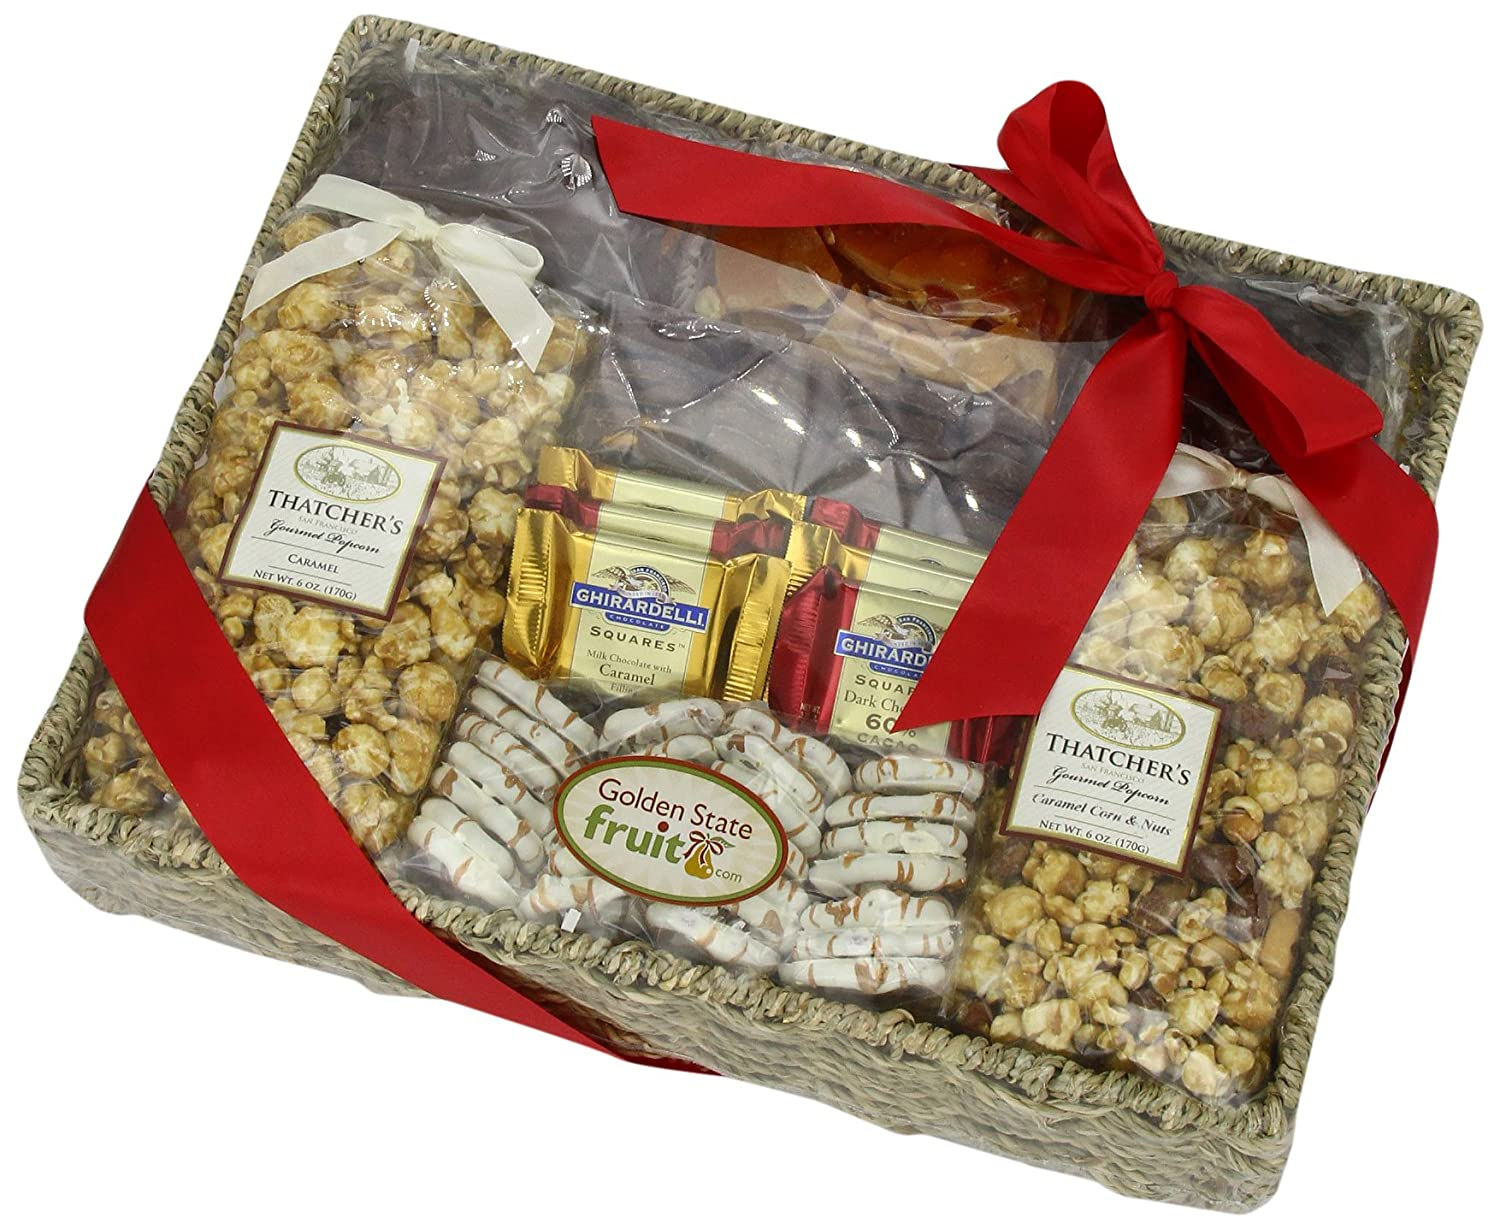 Amazon.com : Chocolate, Caramel and Crunch Grand Gift Basket ...